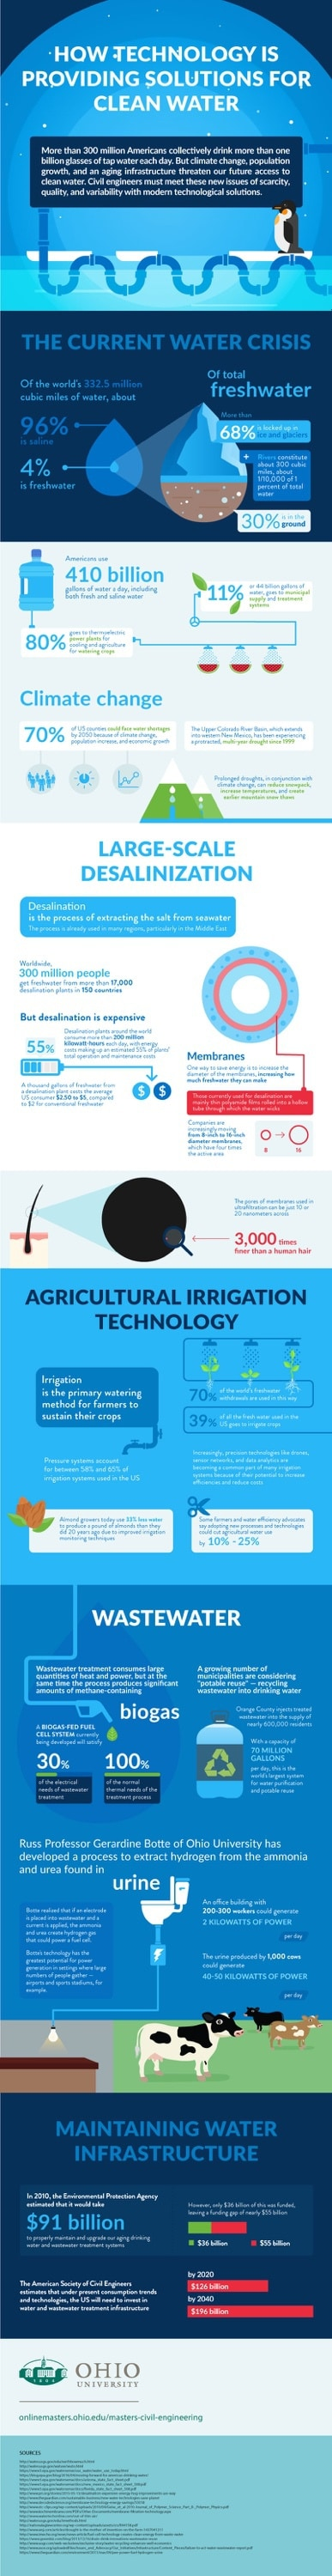 Technology solutions to make clean water